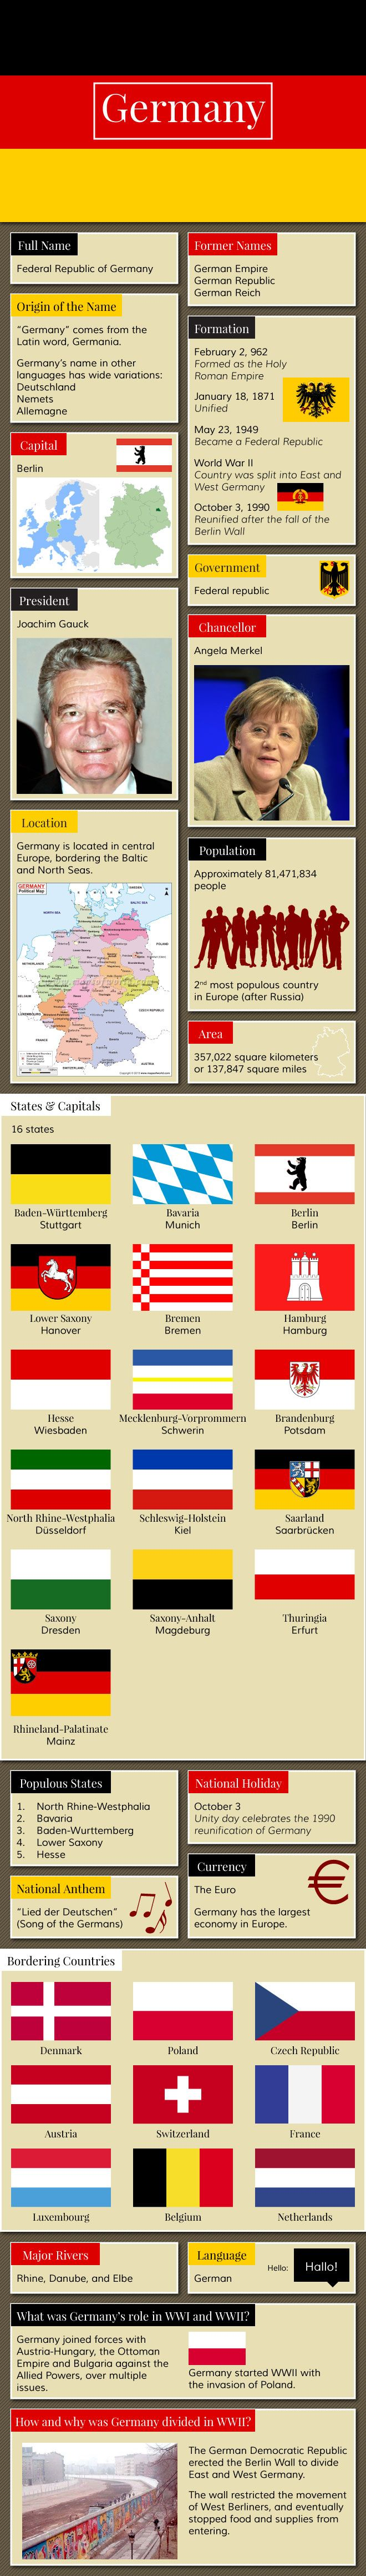 Infographic of Germany Fast Facts